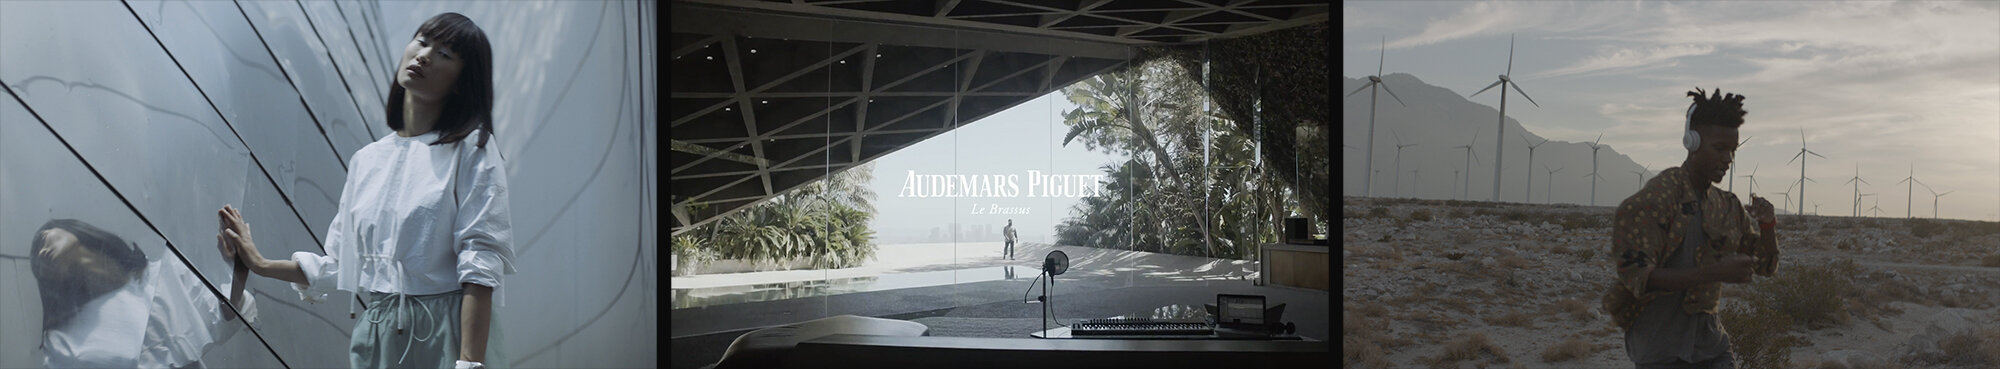 "AUDEMARS PIGUET  I ""ICONS"" I Dir. MICHAEL MACKAY VALENTINE / / THE POOL TEAM"